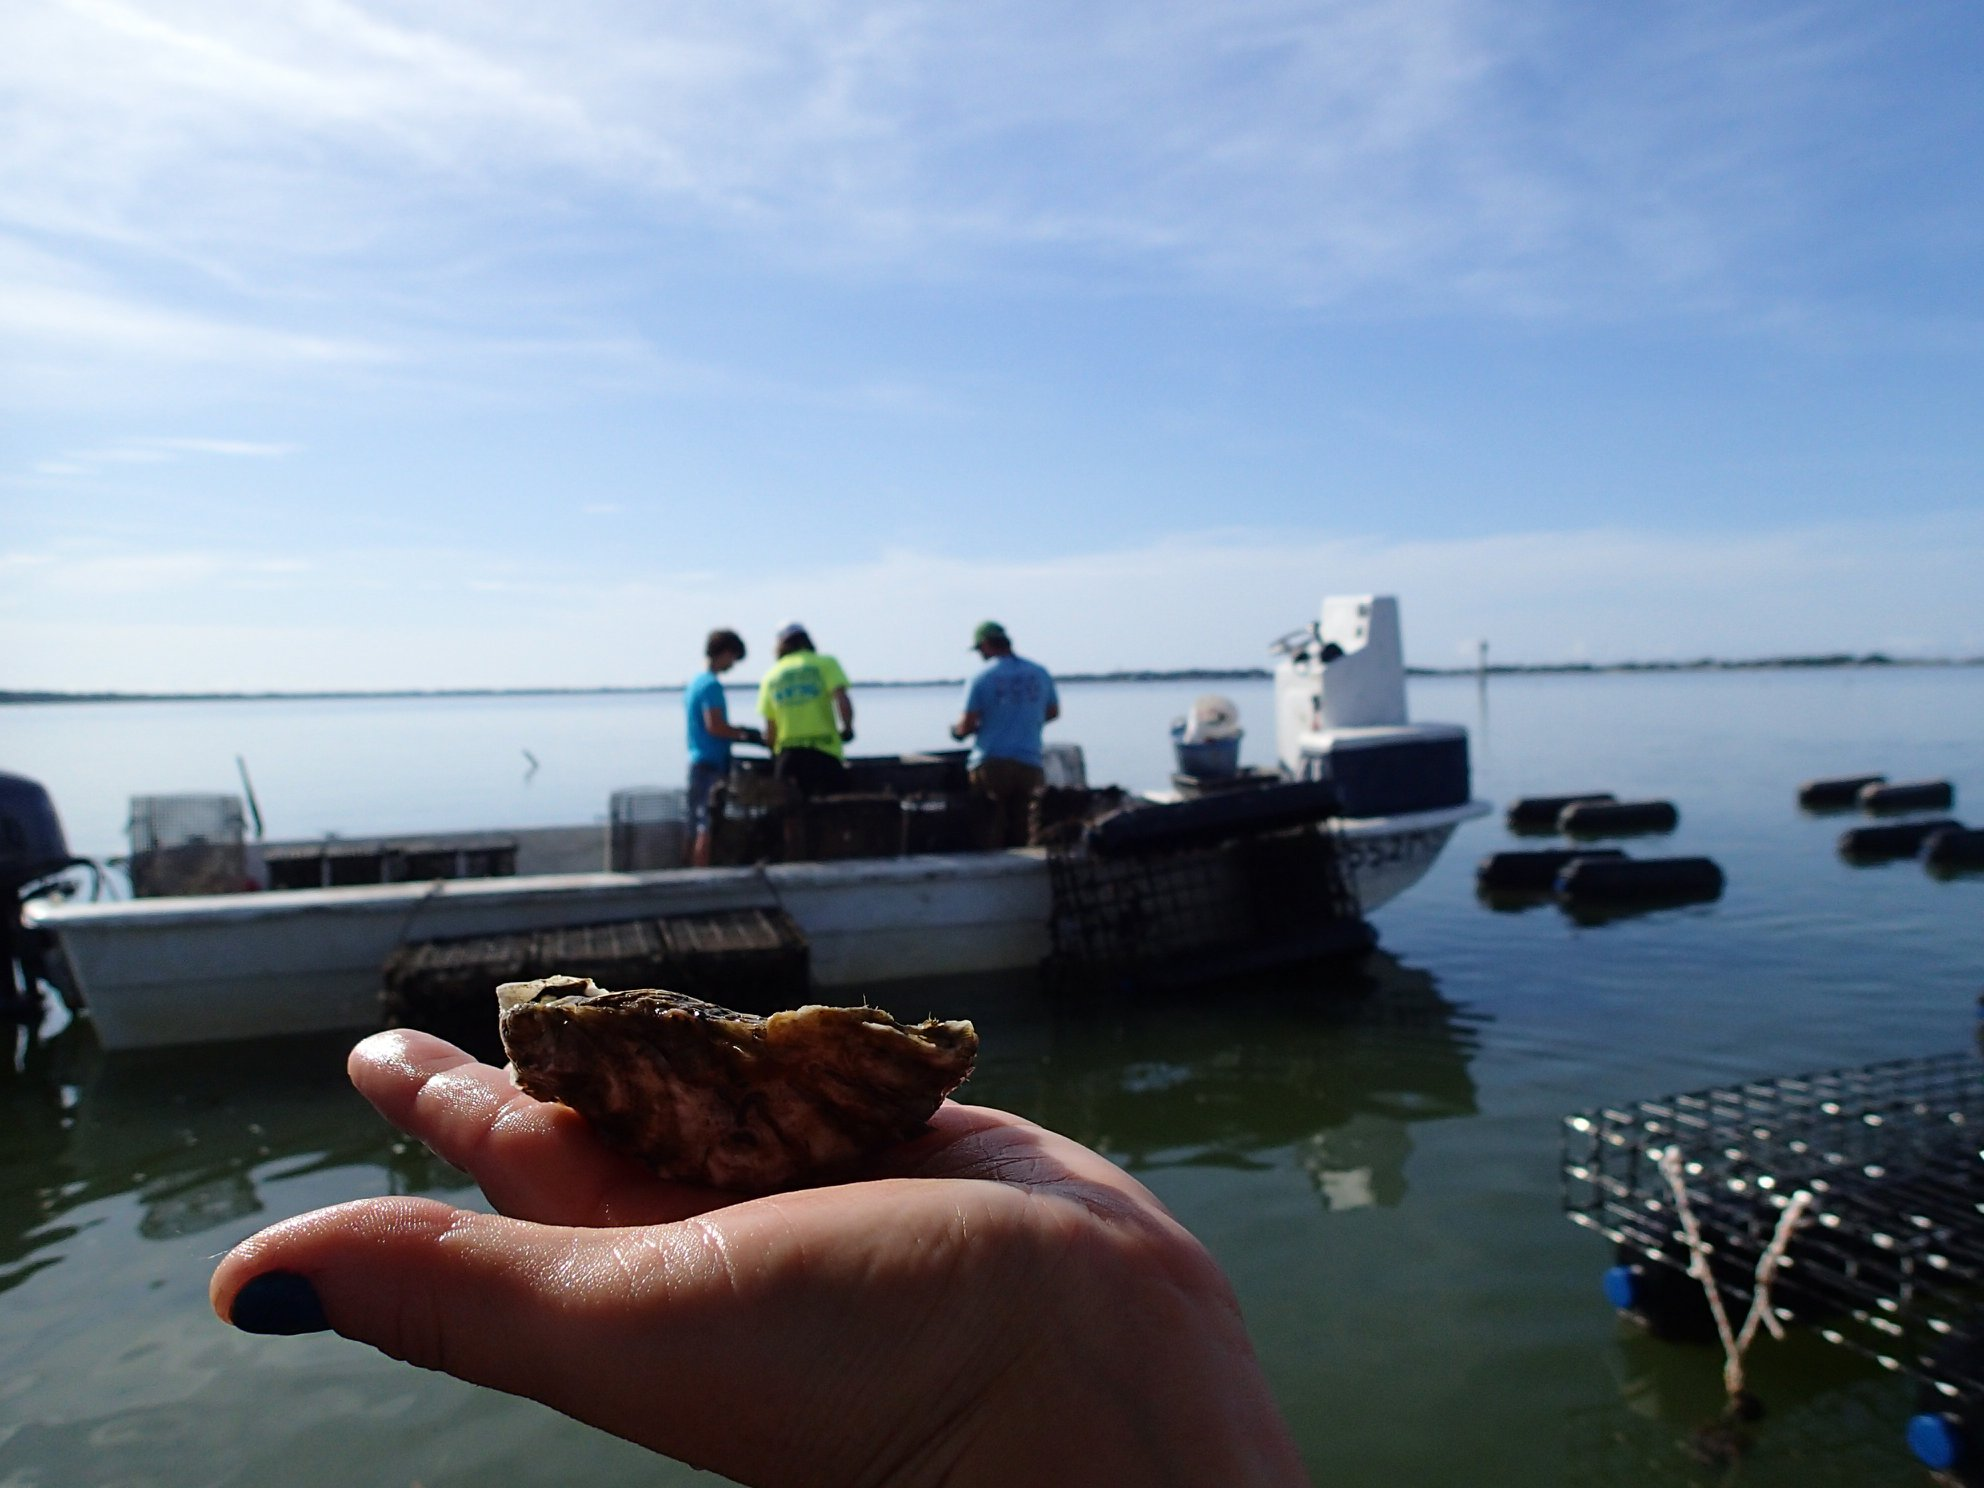 Oysters on the farm in Alligator Harbor. Source: Nicolette Mariano